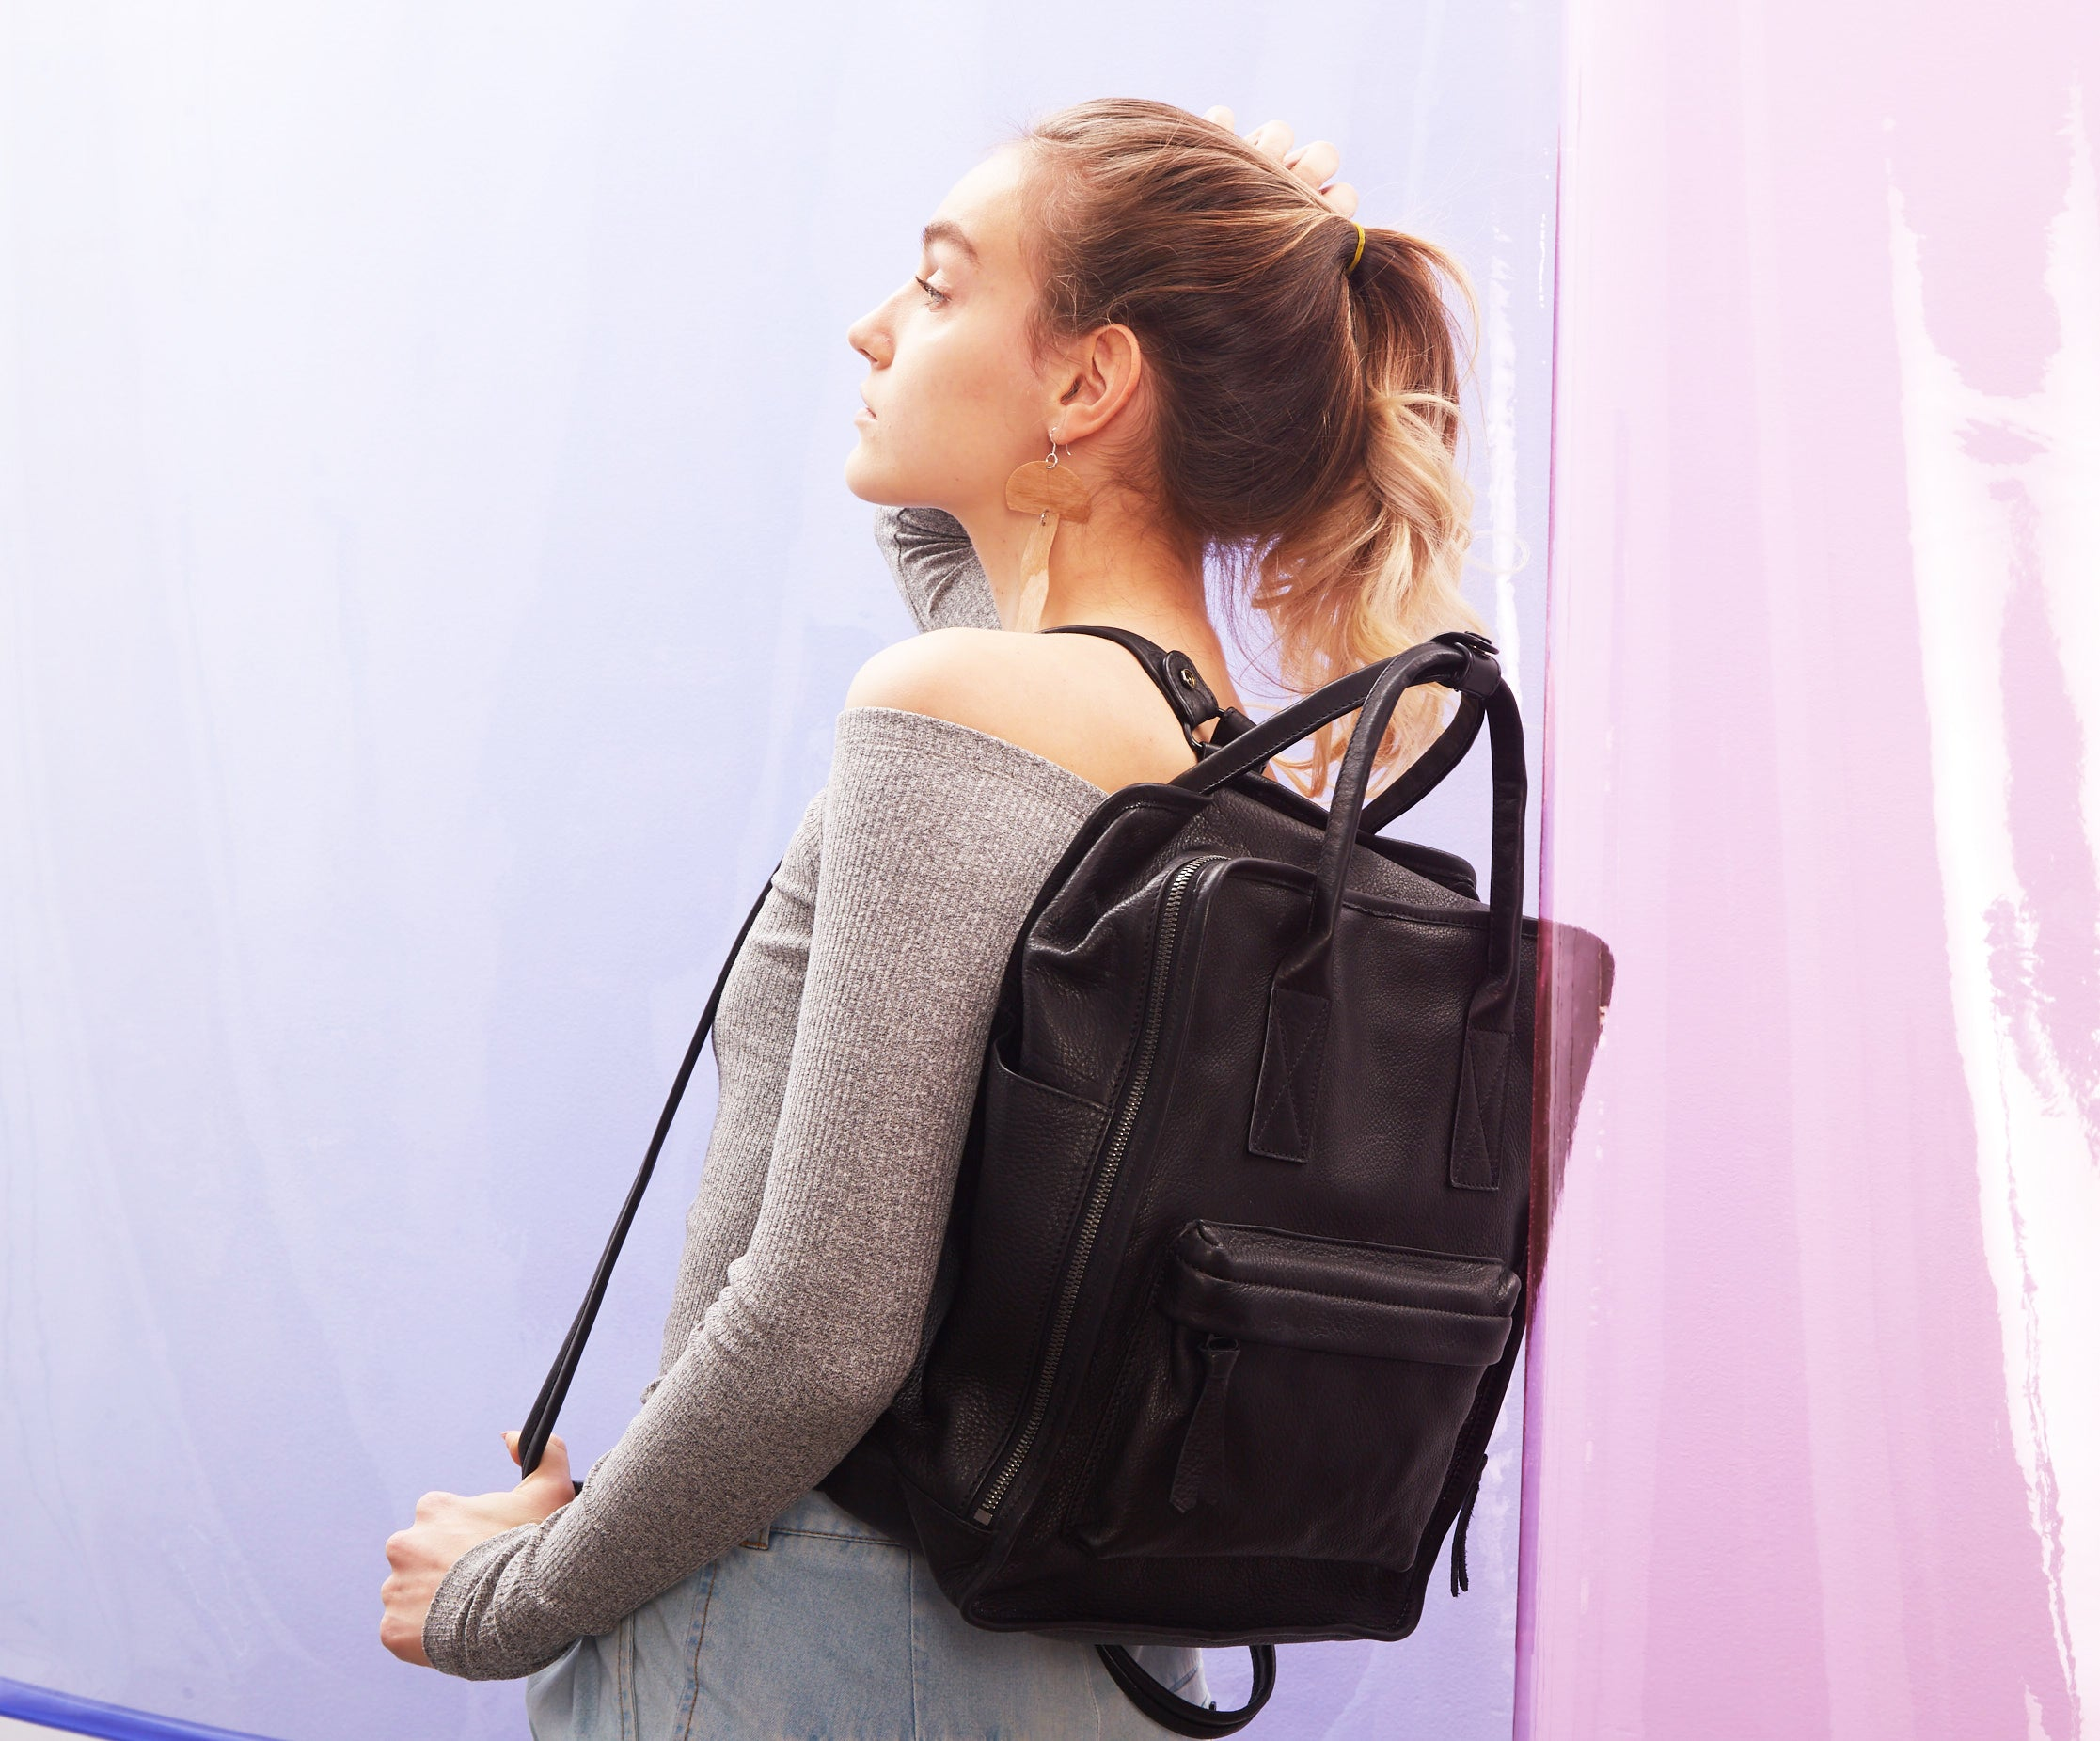 Nora Backpack - Black